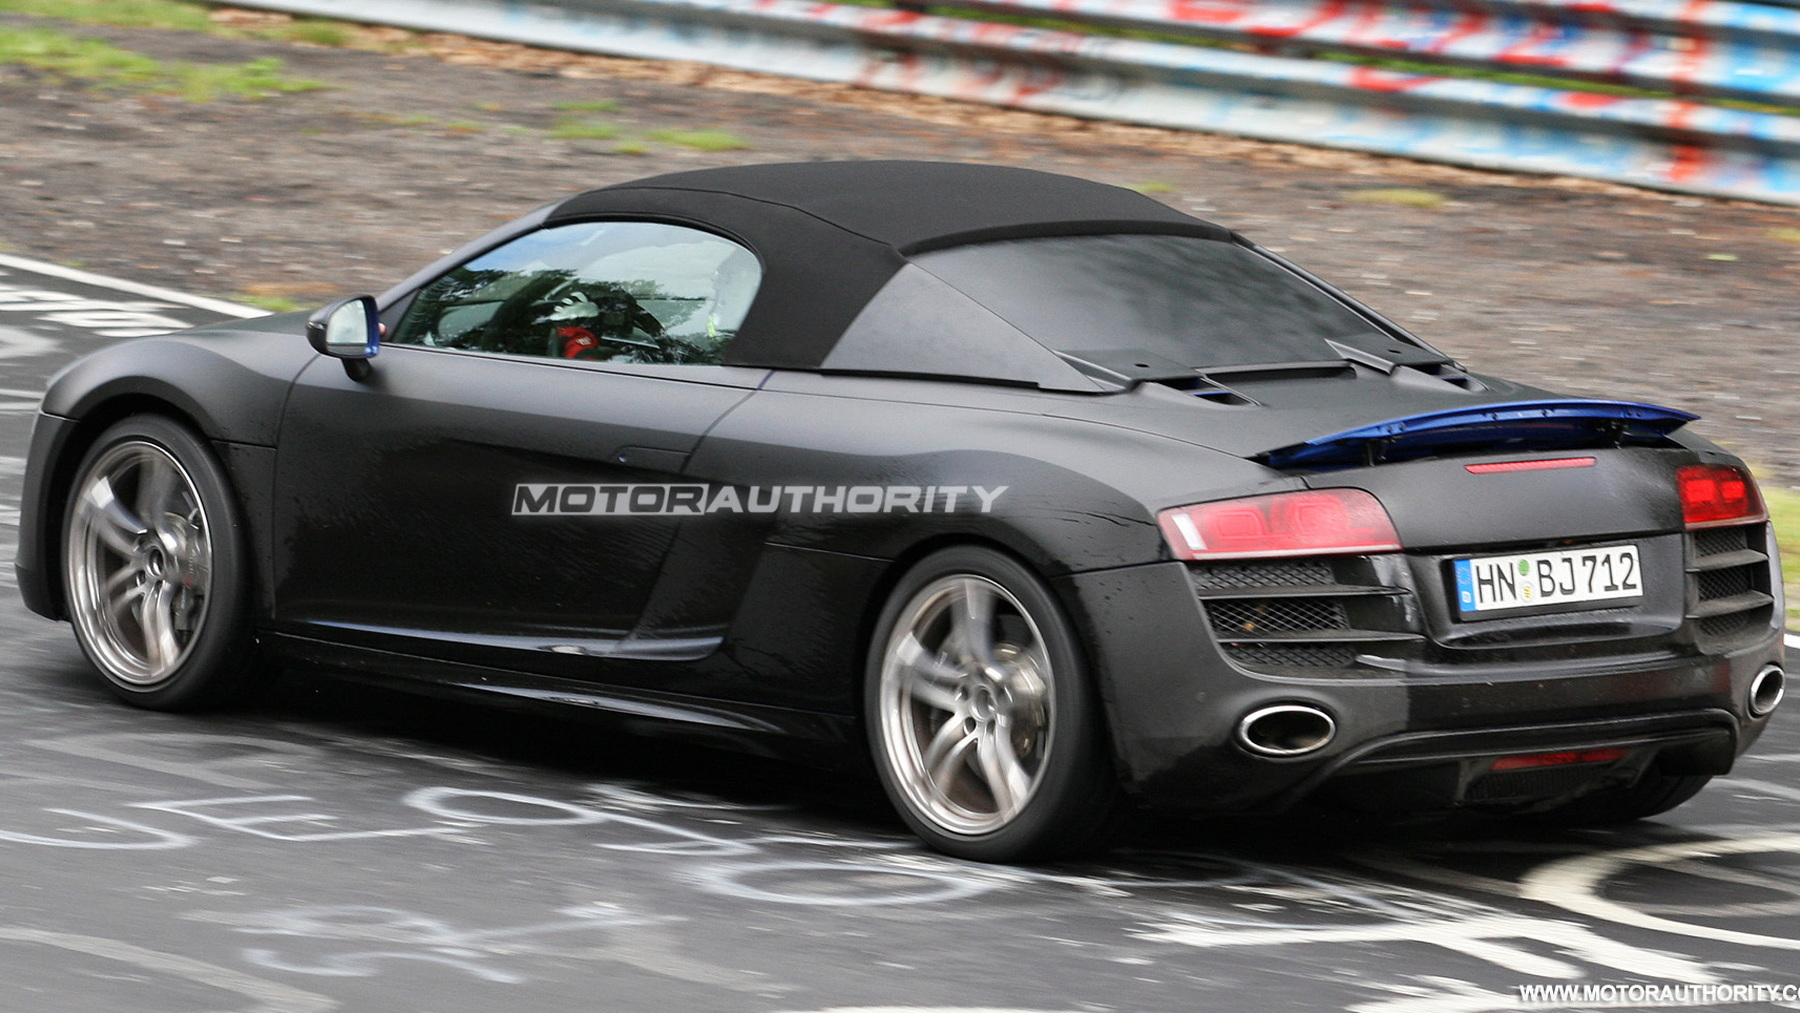 2011 audi r8 spyder spy shots june 010